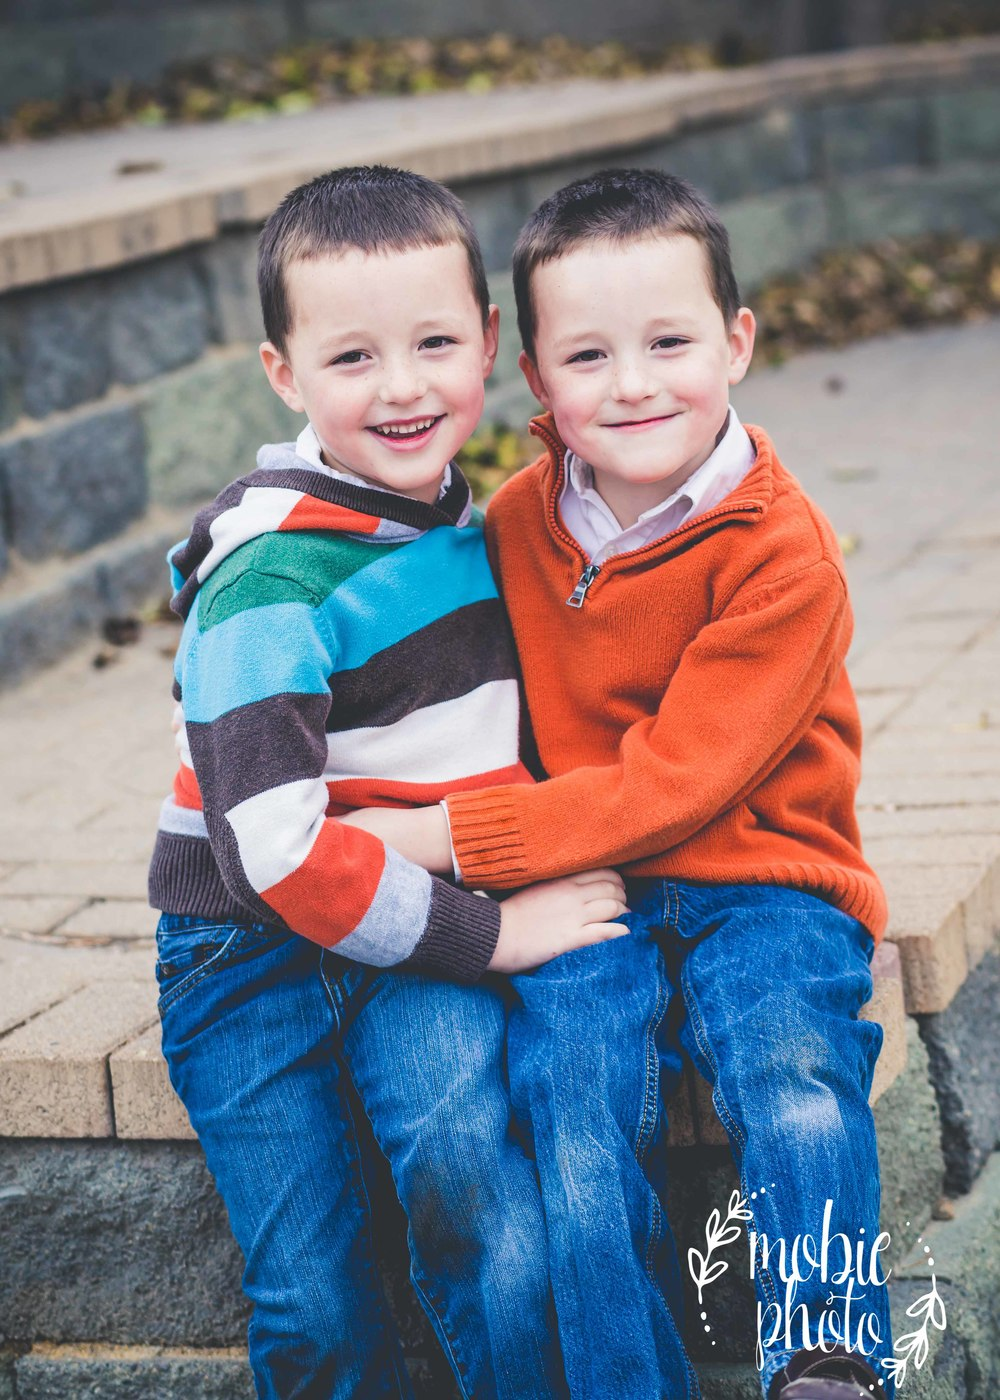 Mobie Photo, Family Photographer in Lehi, Utah